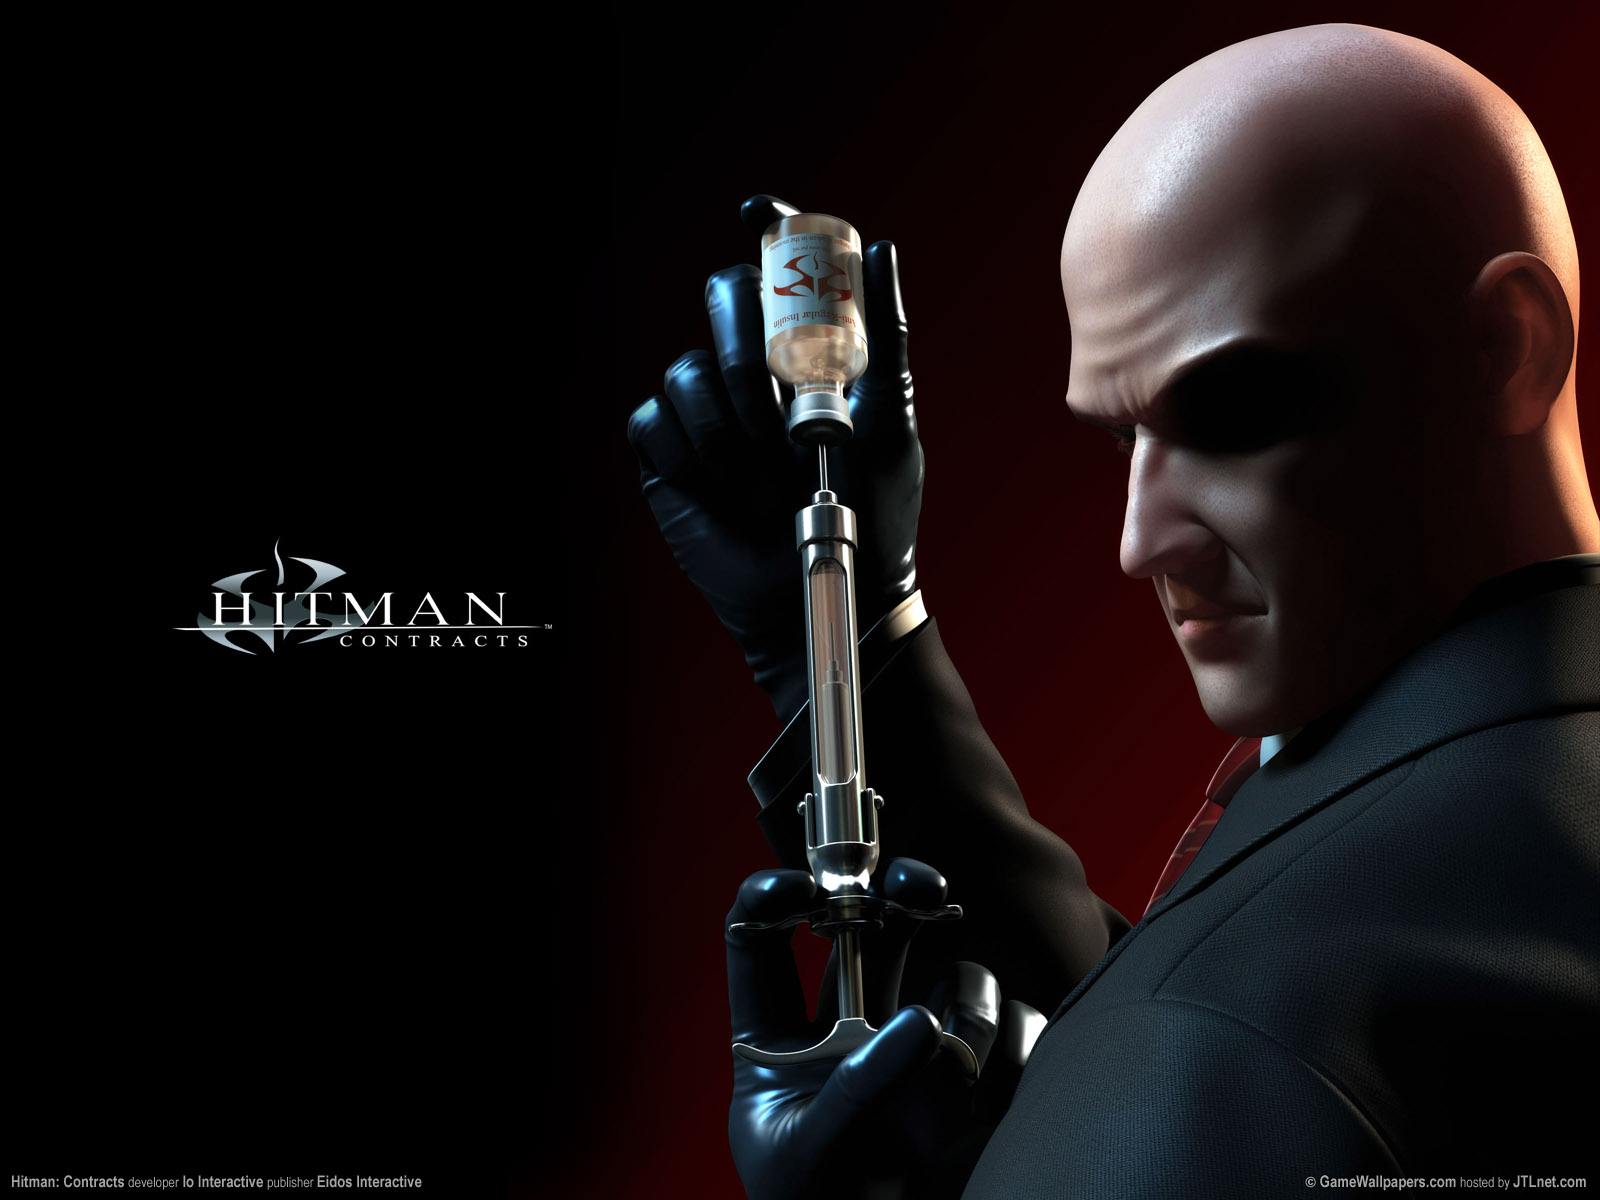 HQ Hitman: Contracts Wallpapers | File 170.29Kb